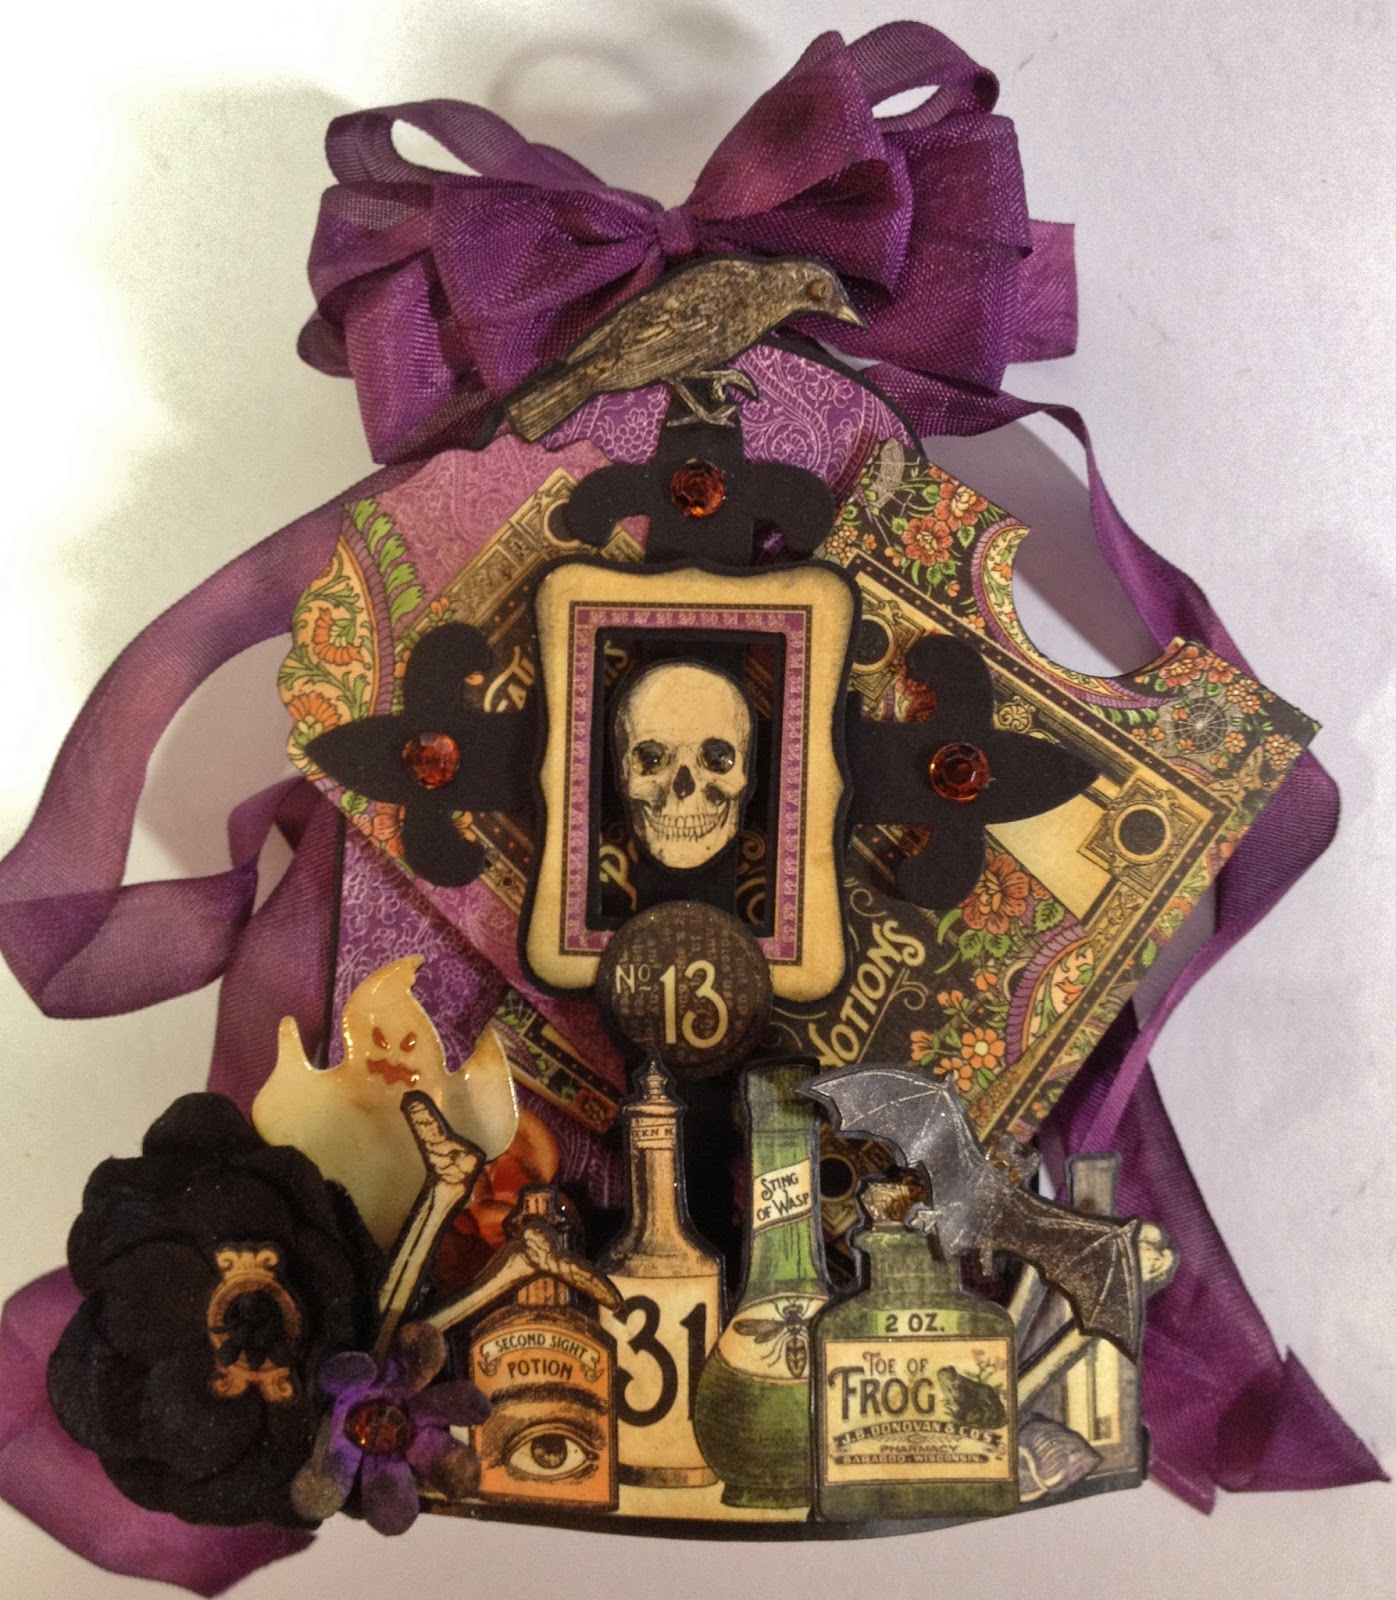 Vintage halloween paper decorations - Cross Die From Th And Flowers From Woc And Petaloo